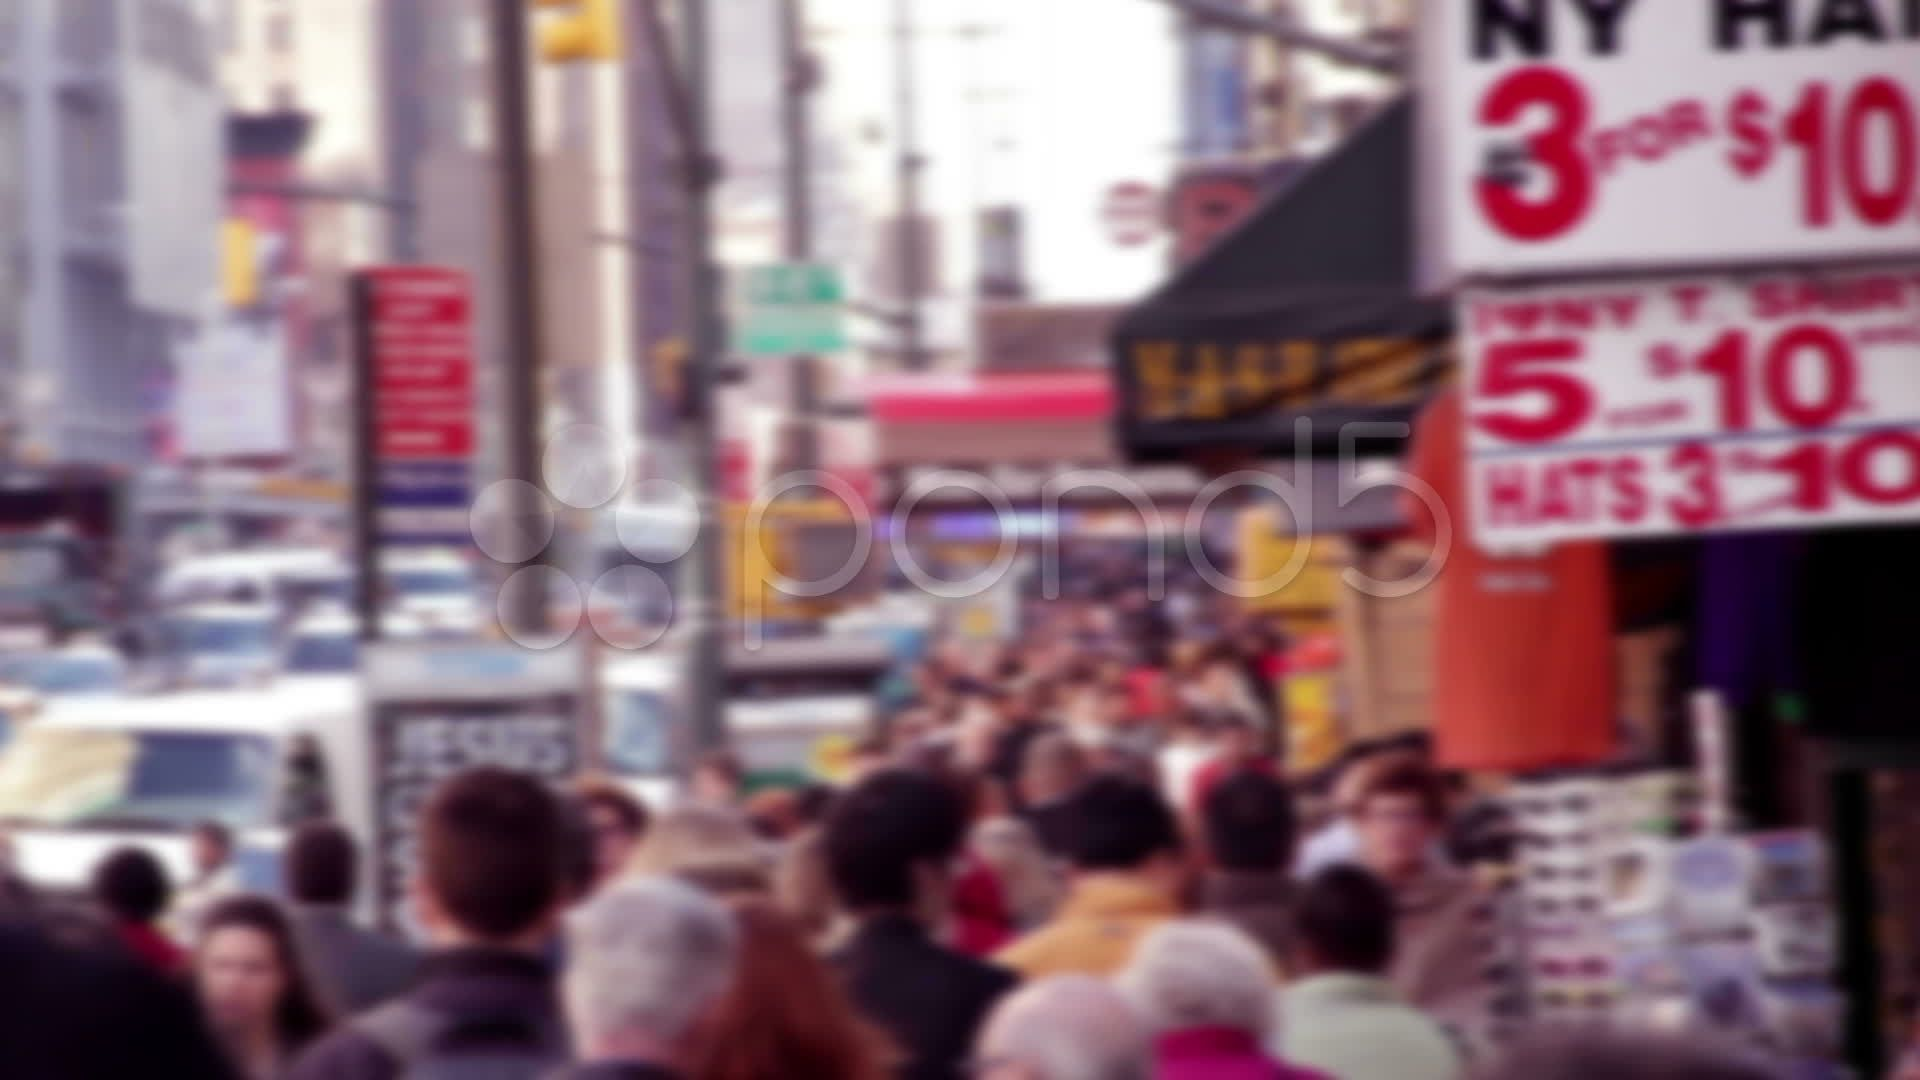 Unrecognizable people and congestion in New York City HD814 Stock Footage congestionYorkUnrecognizablepeople